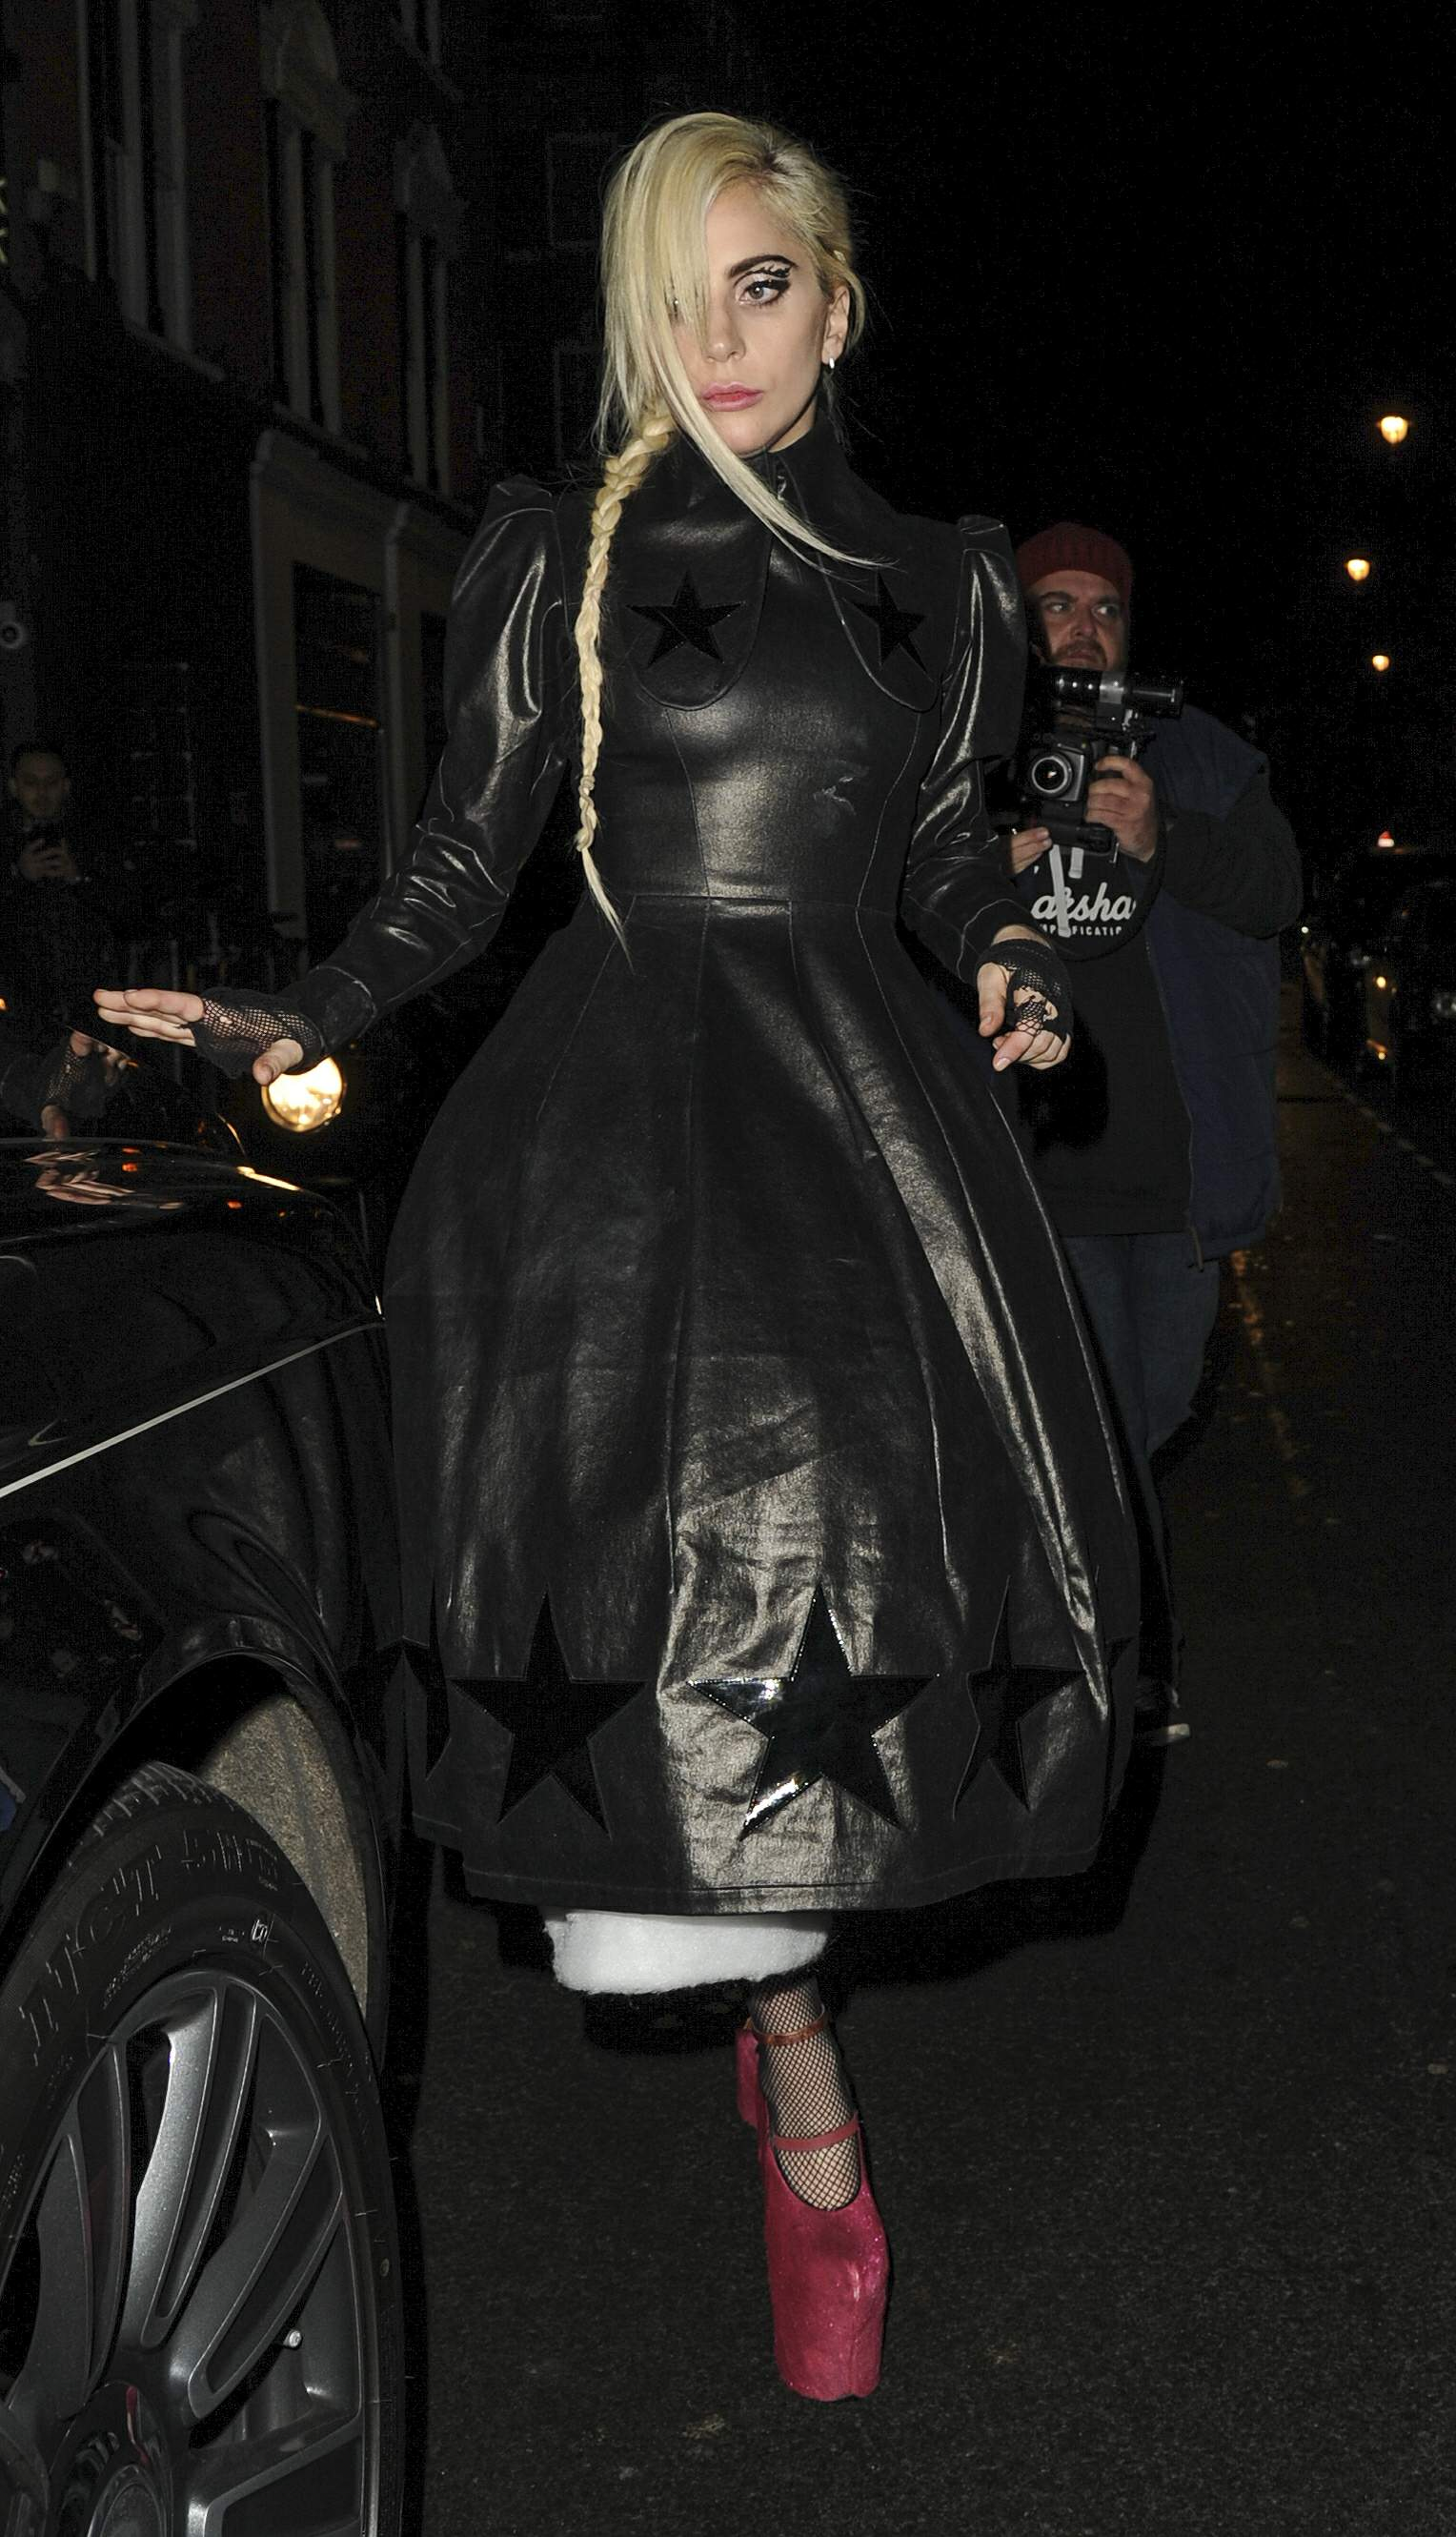 Lady Gaga leaving Groucho club